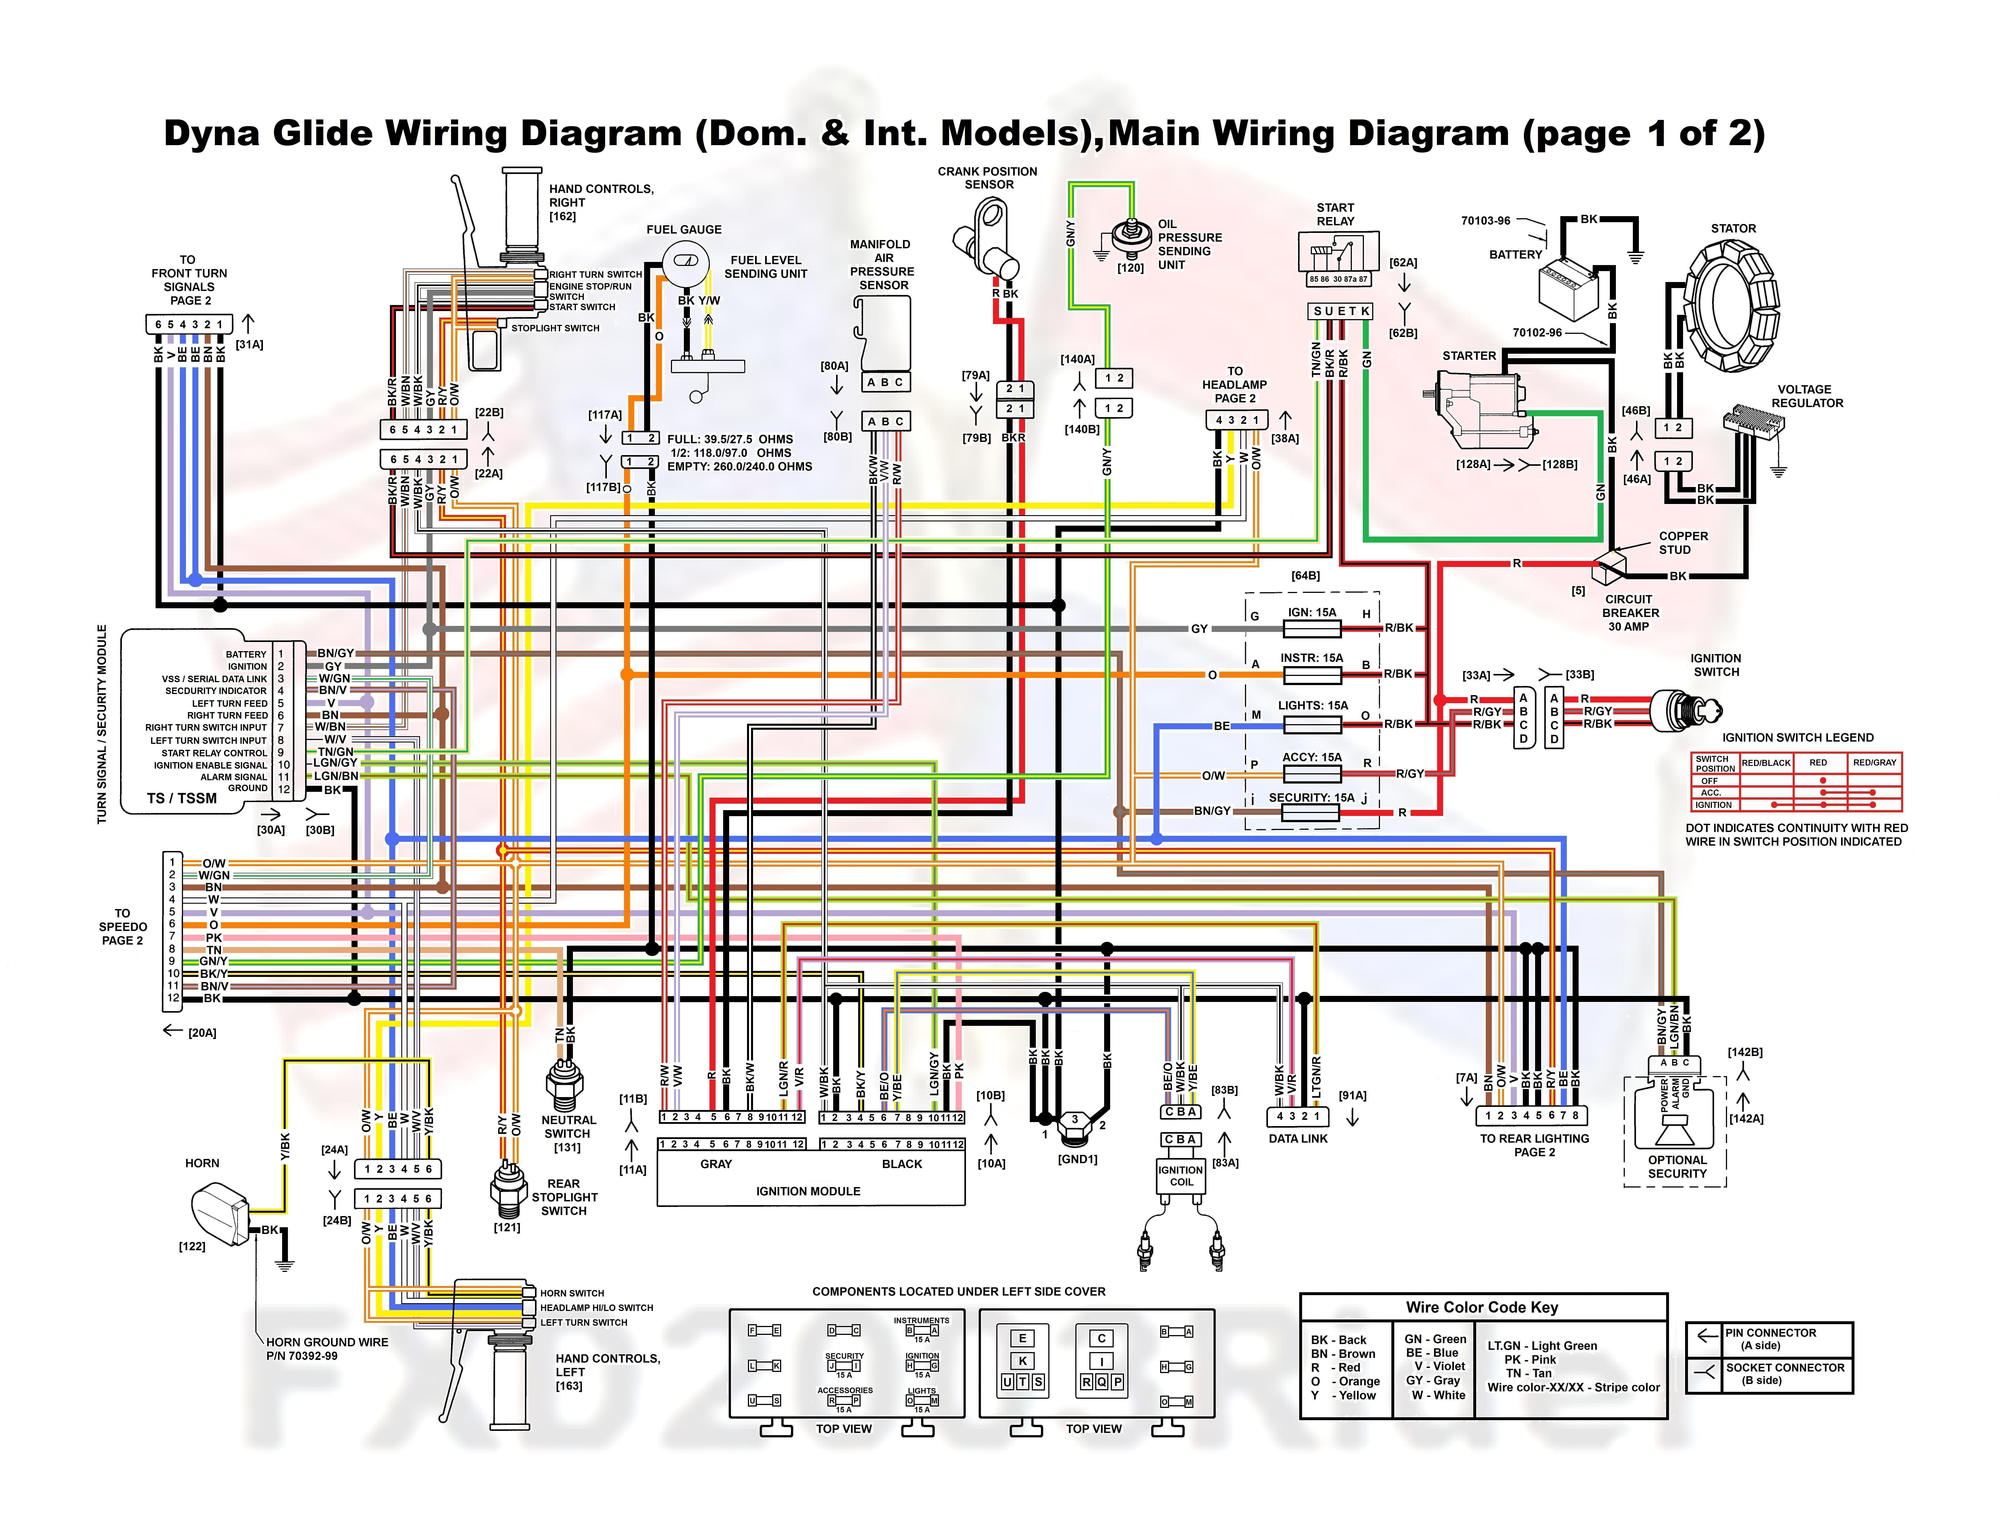 Fuse Box Diagram 91 Mazda 929s Wiring Library Radio Frequency Circuit Controlcircuit Seekic Fxstc Auto Electrical Question